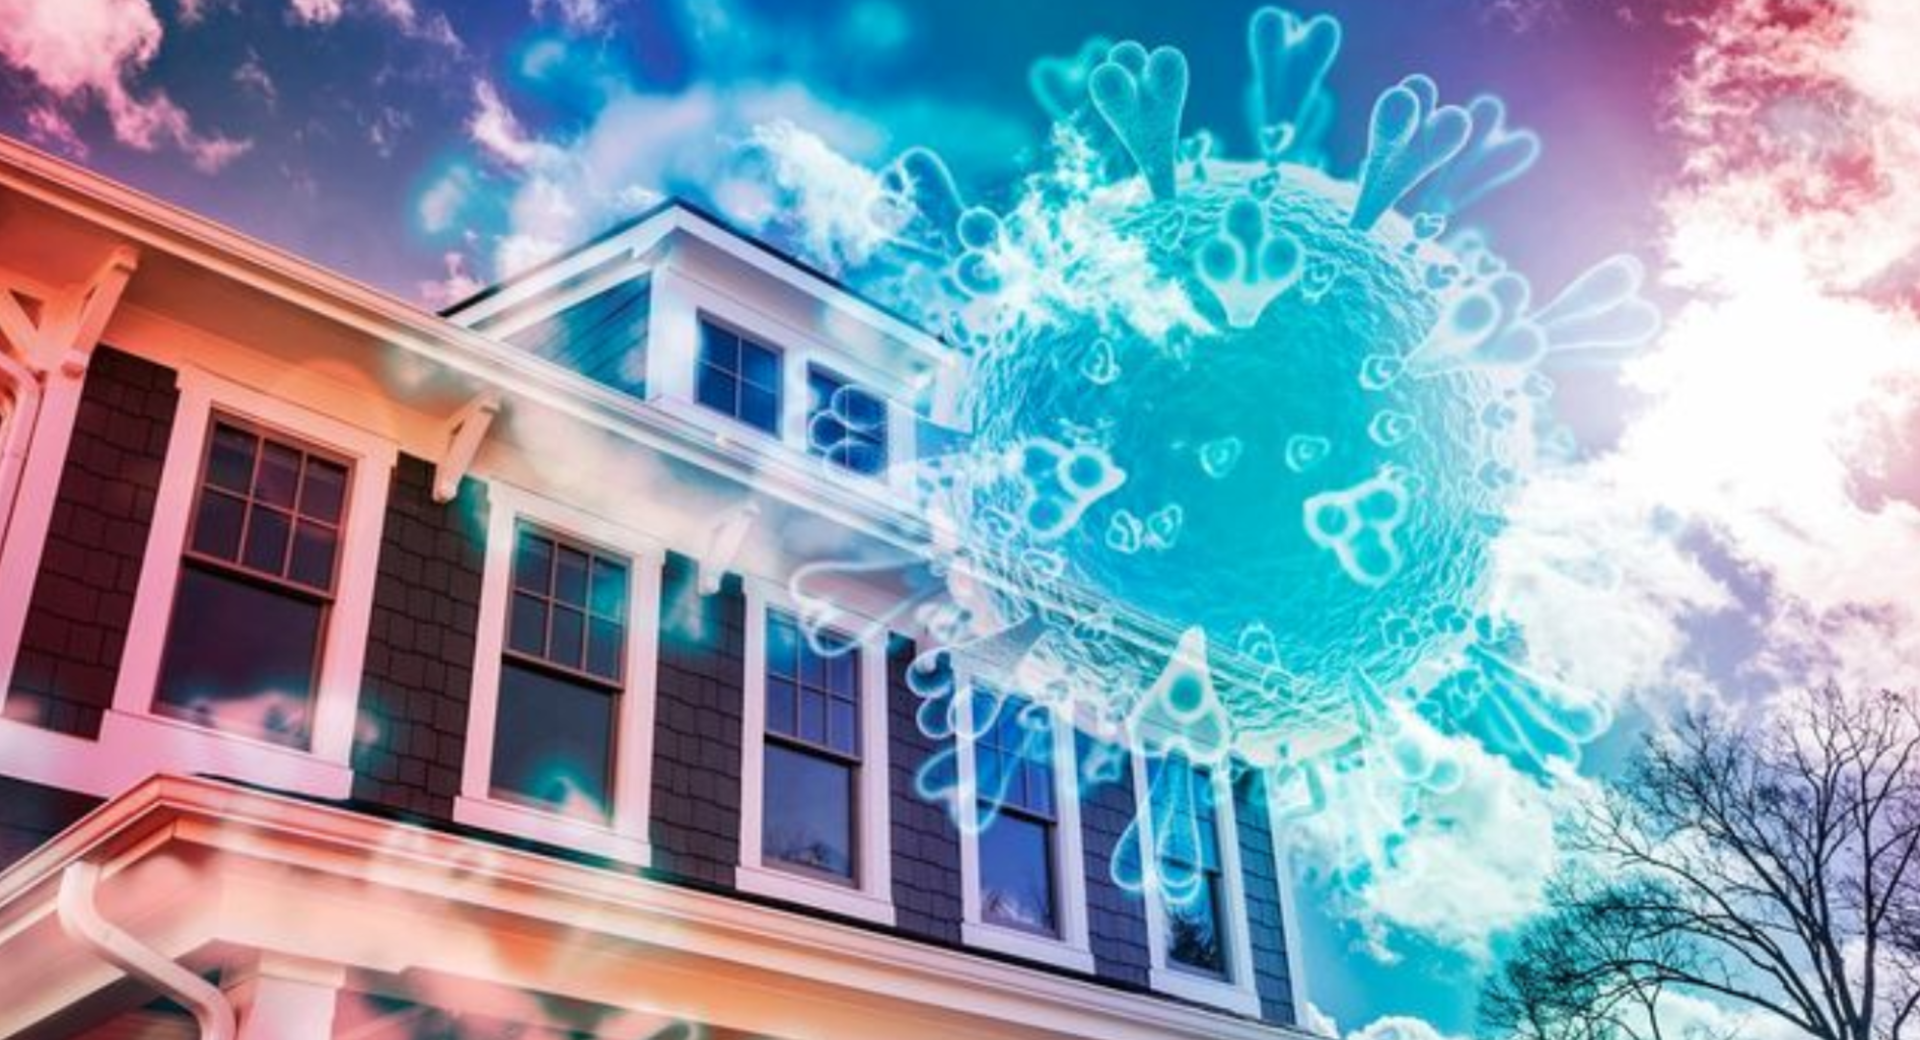 3 Reasons People Are Buying Real Estate In The Middle Of A Pandemic